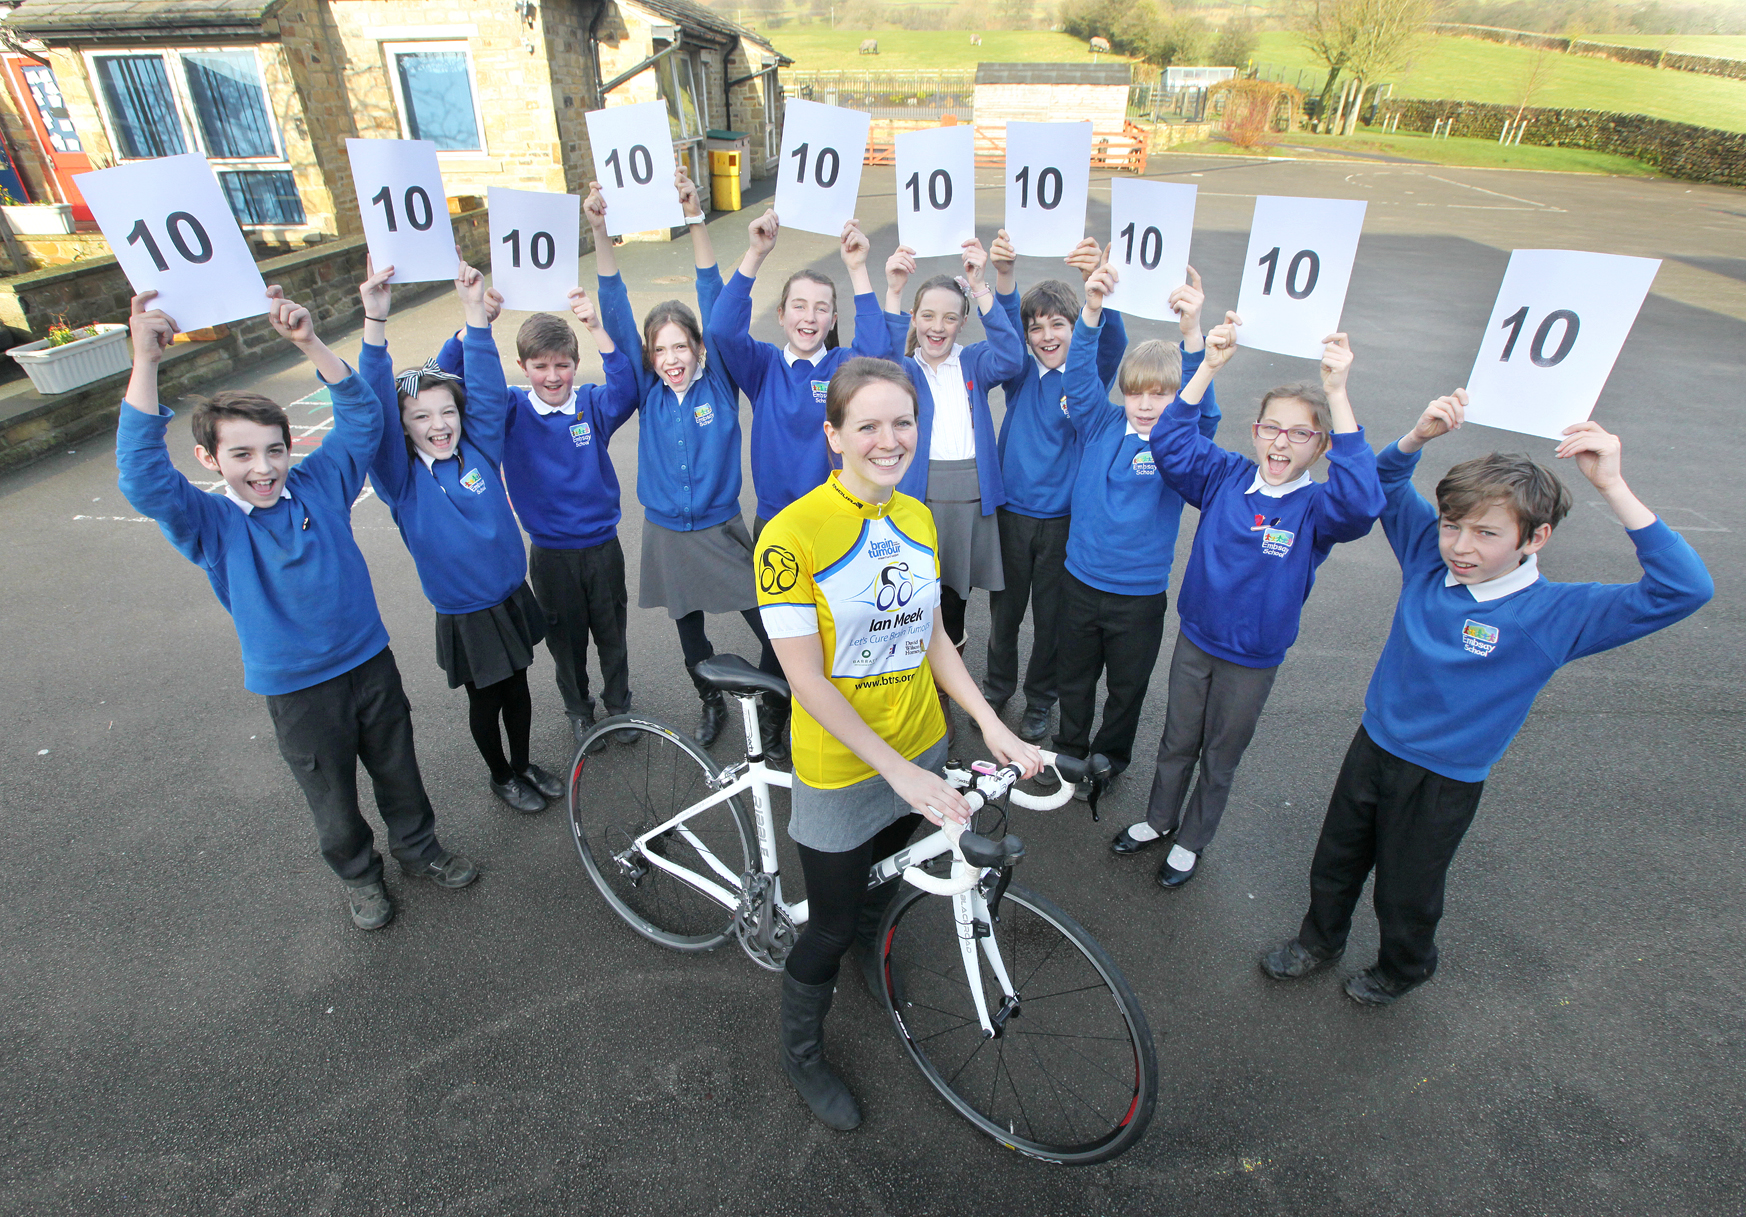 Embsay Primary School teacher Alison Bell has set herself 10 fundraising